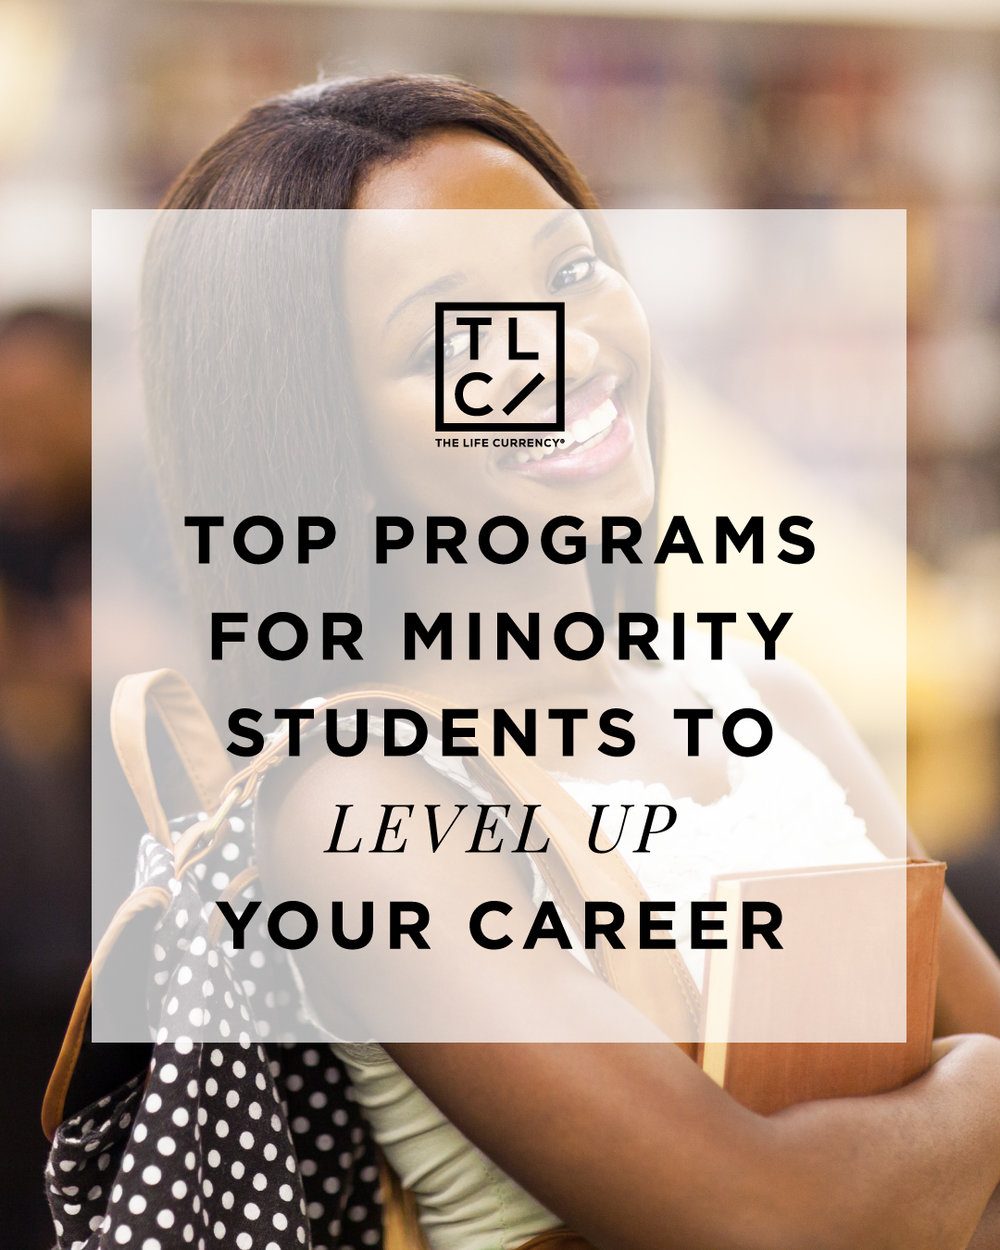 Top Programs for Minority Students to Level up Your Career